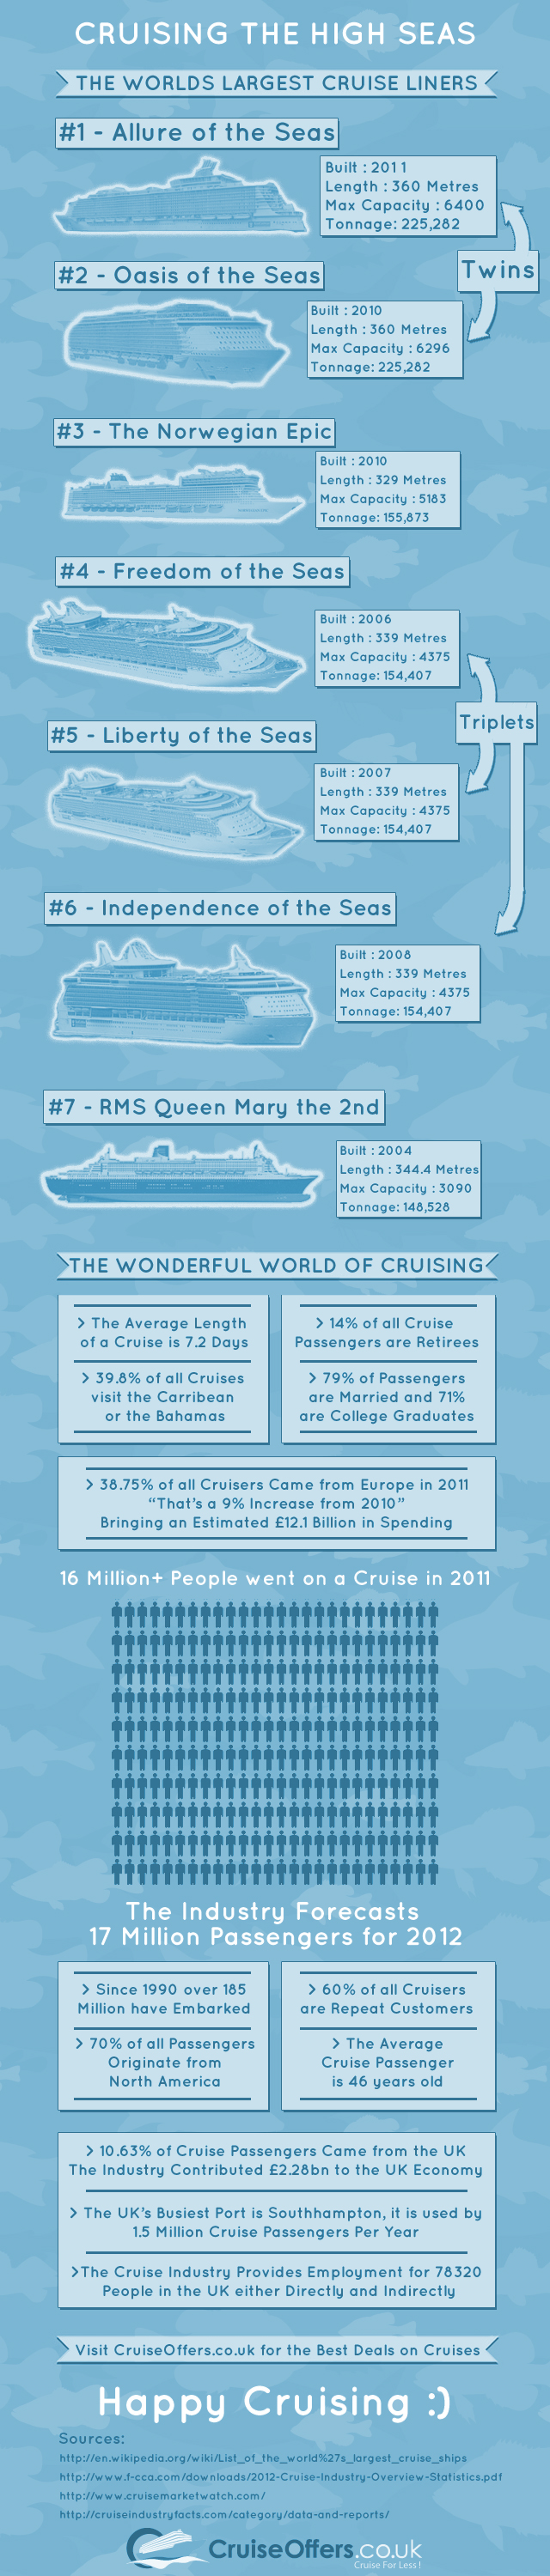 Cruise Industry Infographic 2012